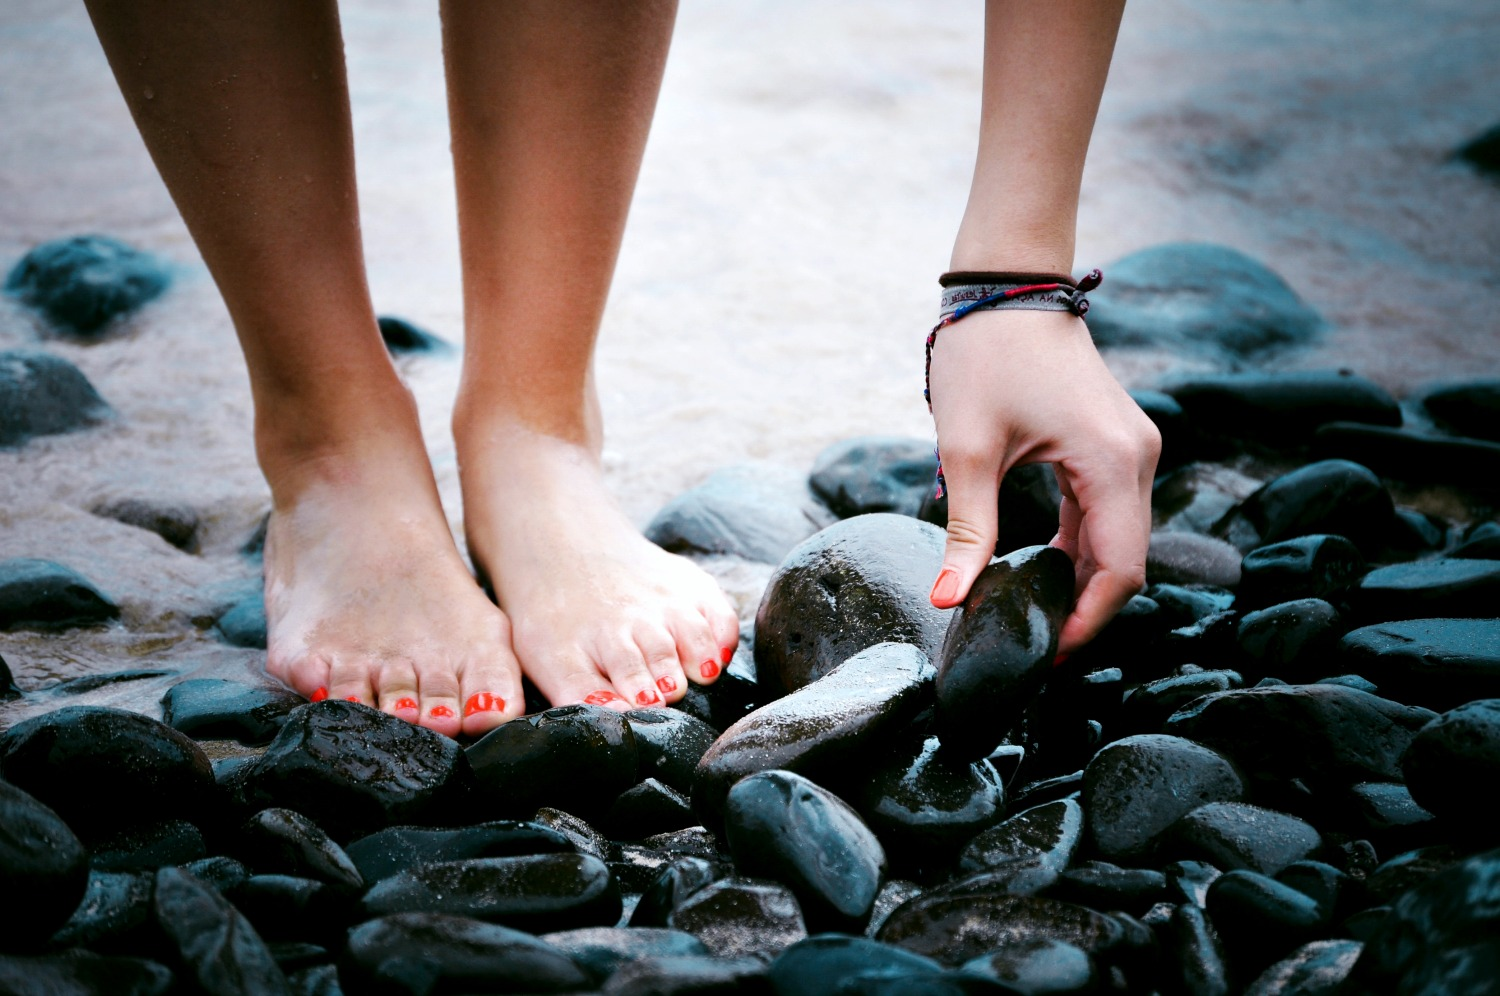 A person with bare feet and red painted nails reaches down to pick up a shiny black river stone.